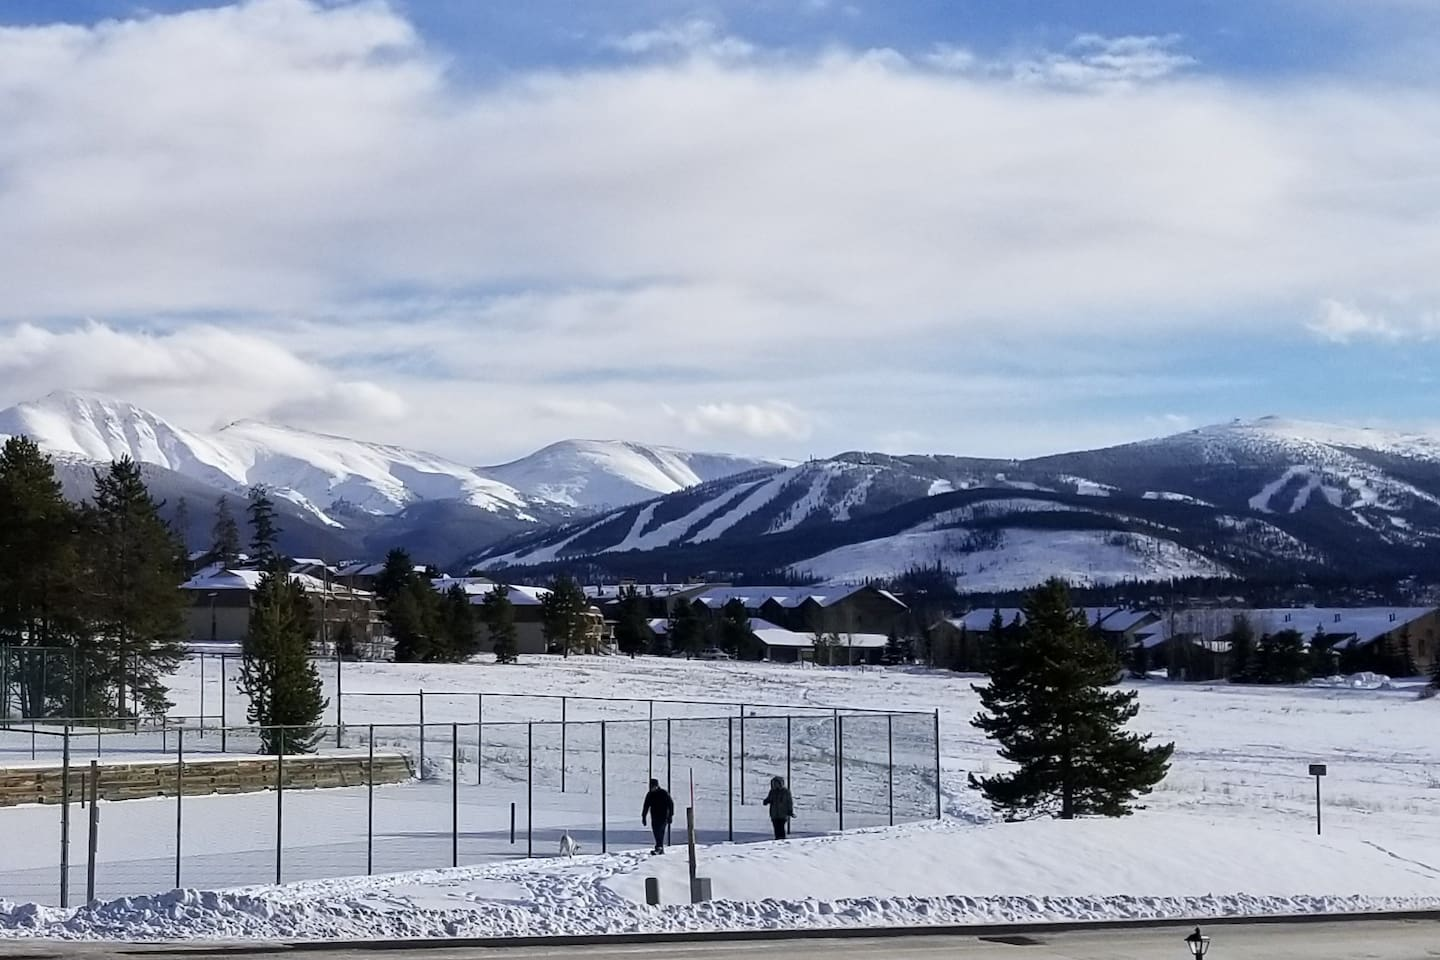 View of Winter Park Resort from Deck